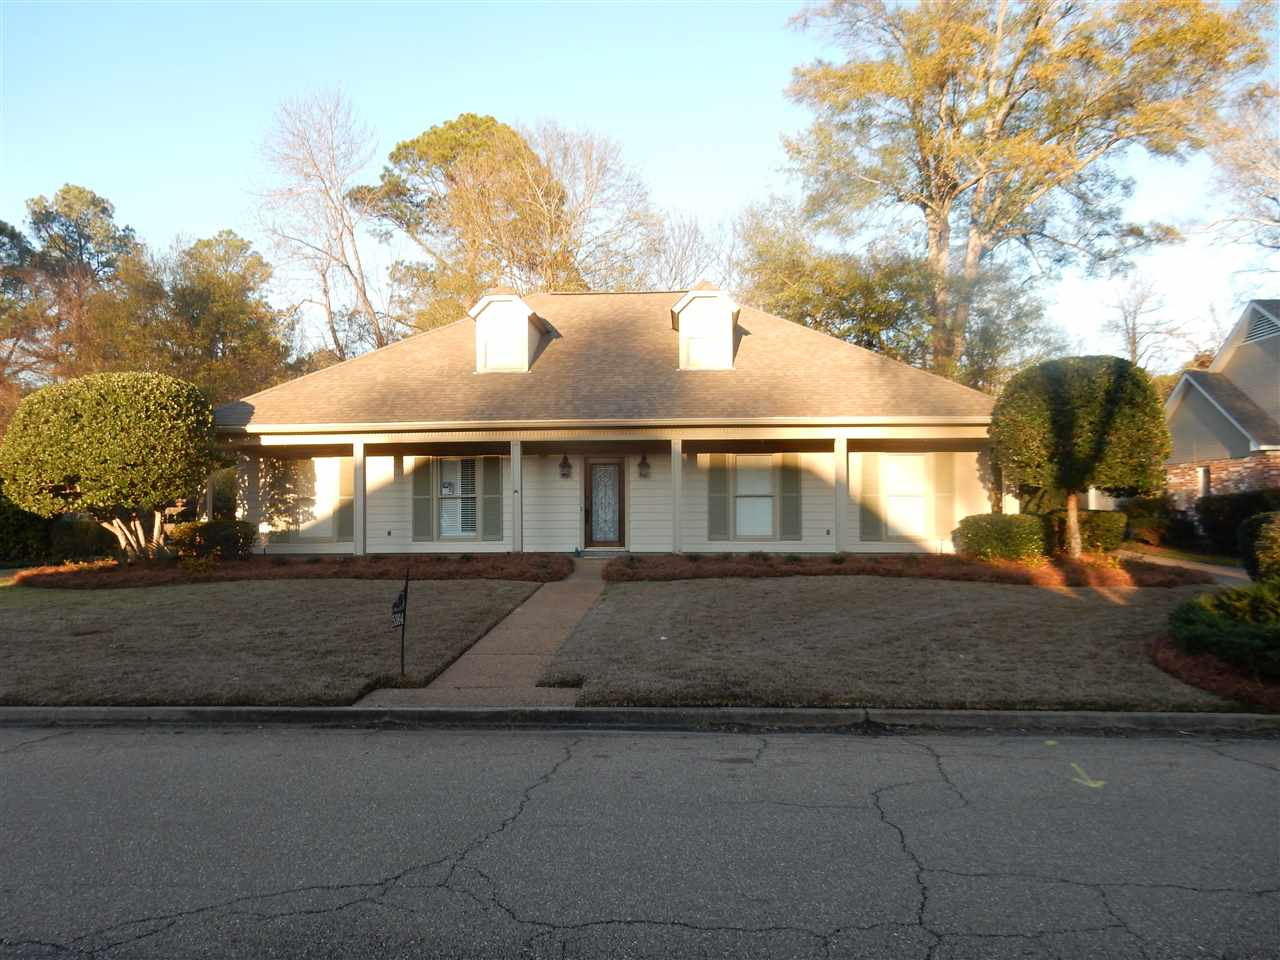 Rental Homes for Rent, ListingId:36155174, location: 5364 FAIRWAY ST Jackson 39211